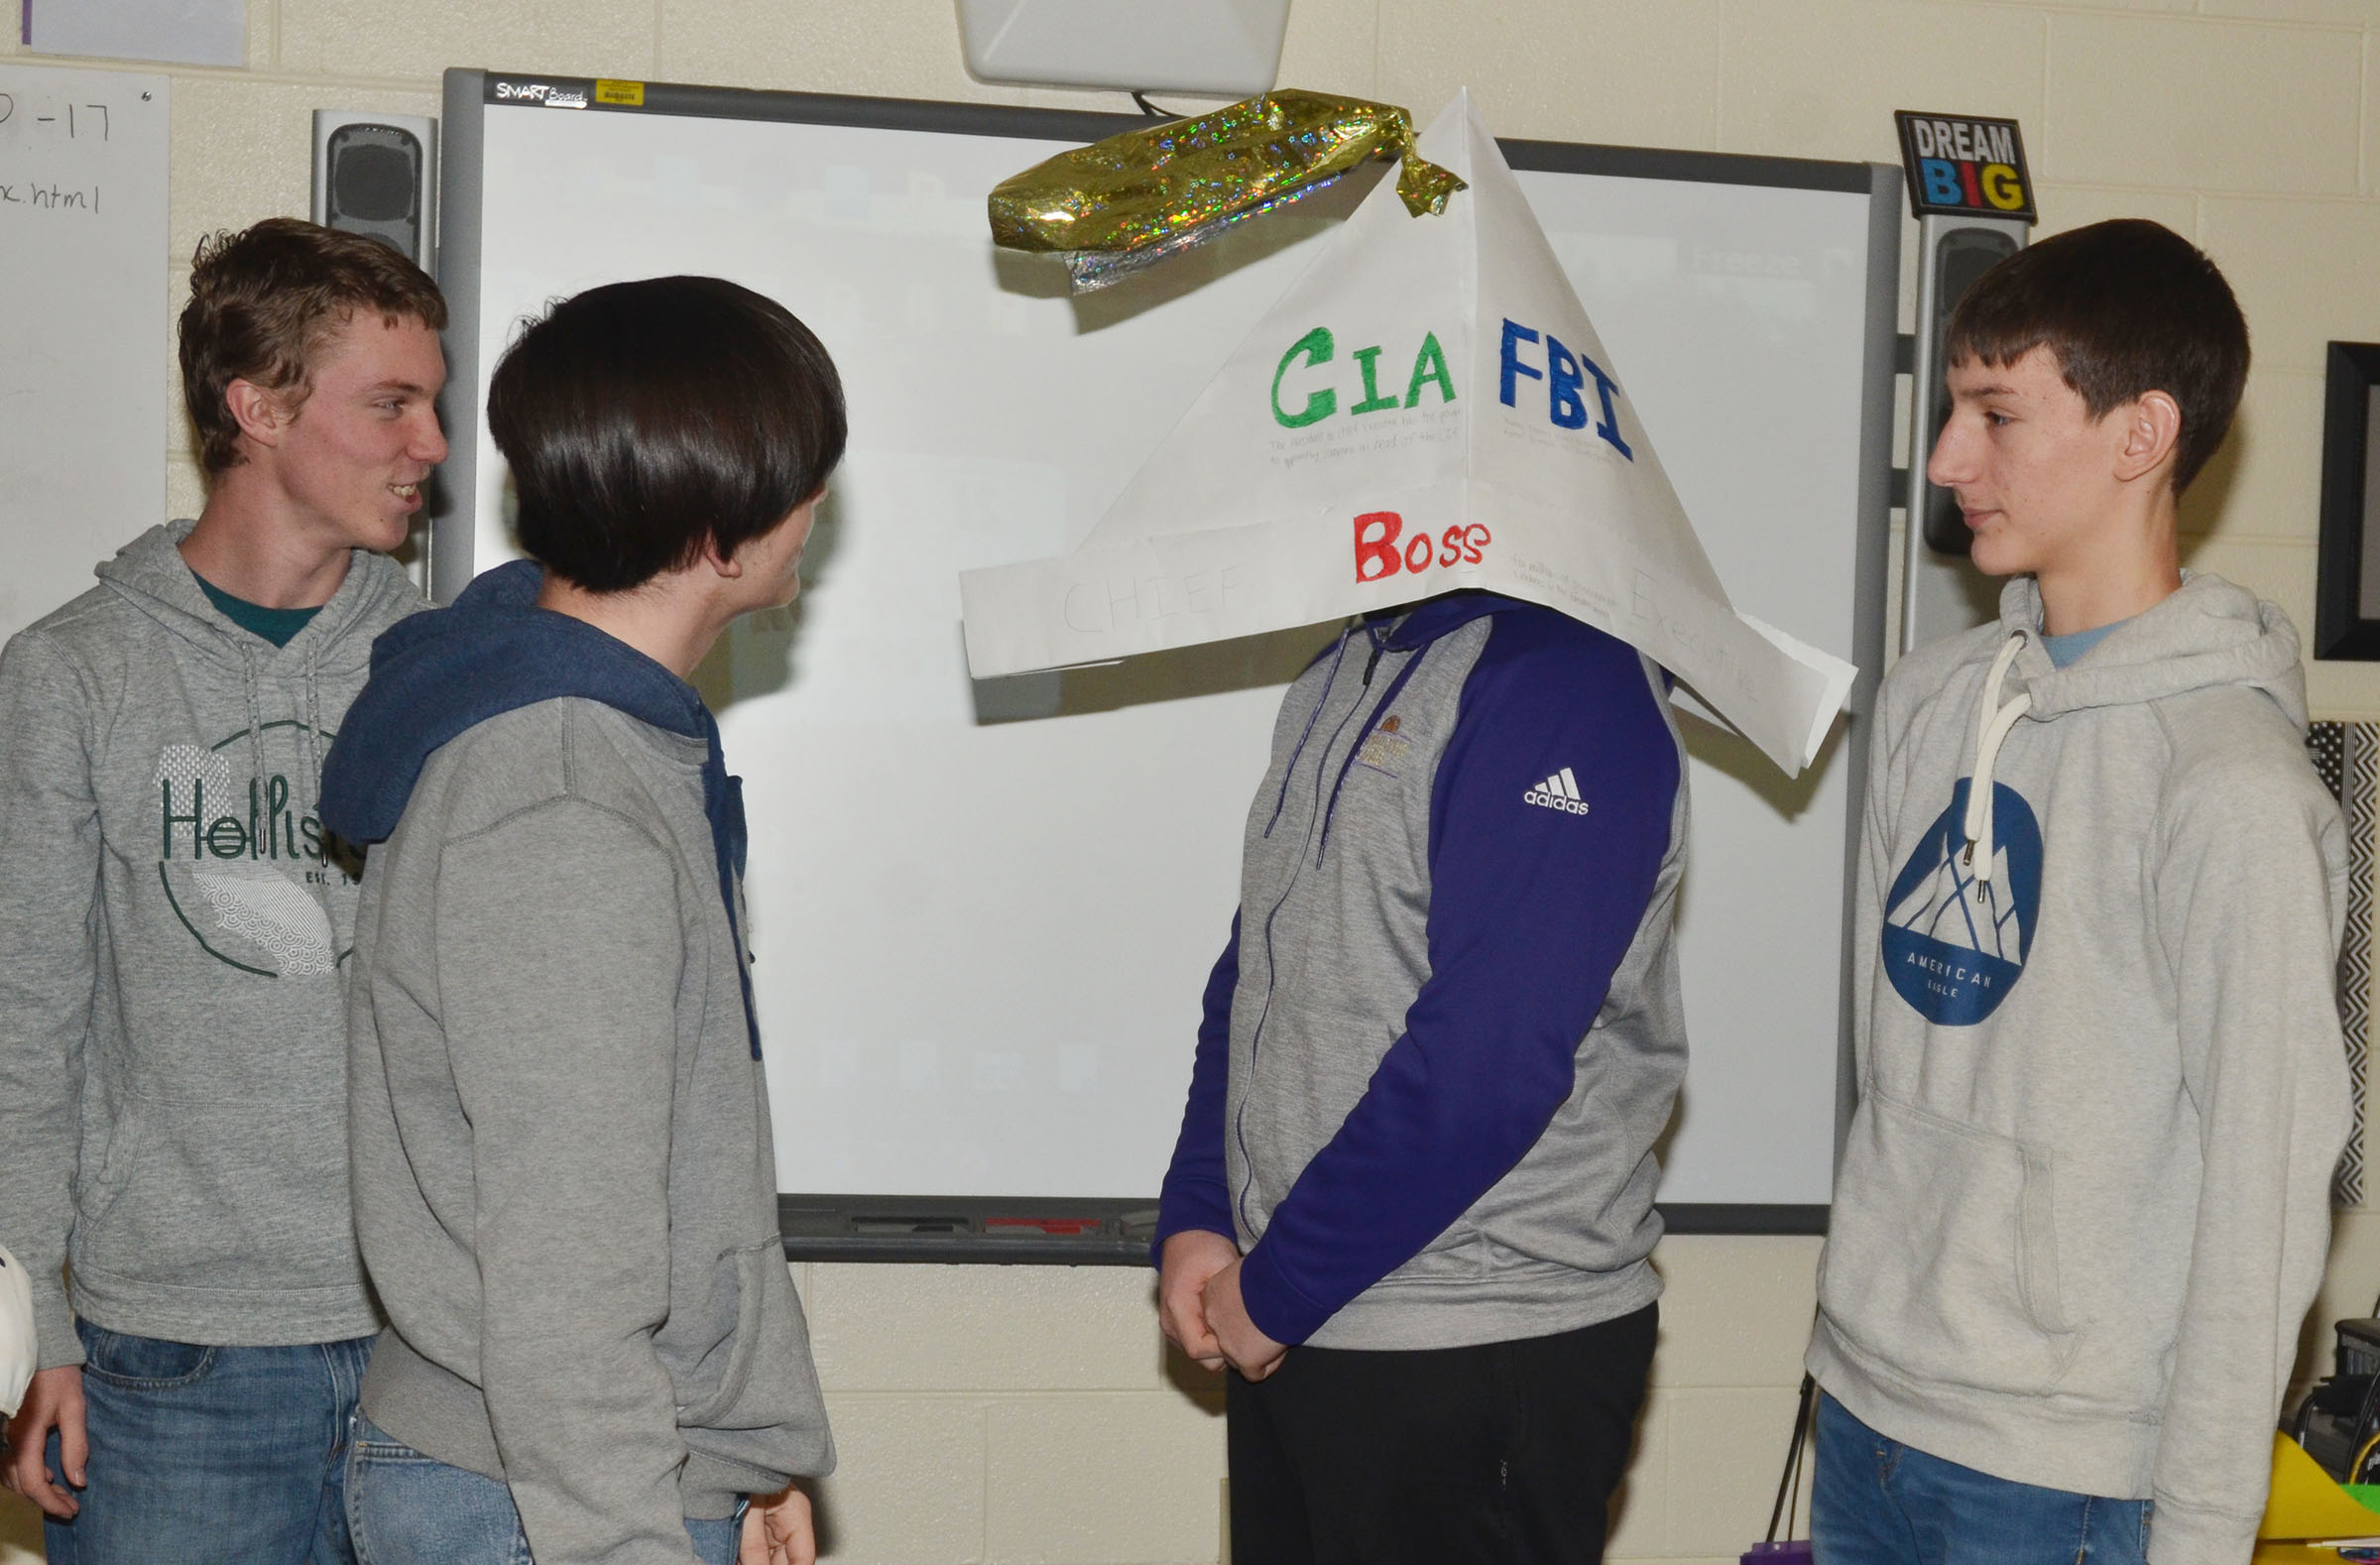 CHS sophomore Spencer Swafford wears his group's presidential hat as his classmates discuss their project. From left are sophomores Payton Reynolds, Cameron Bohannon and Evan McAninch.